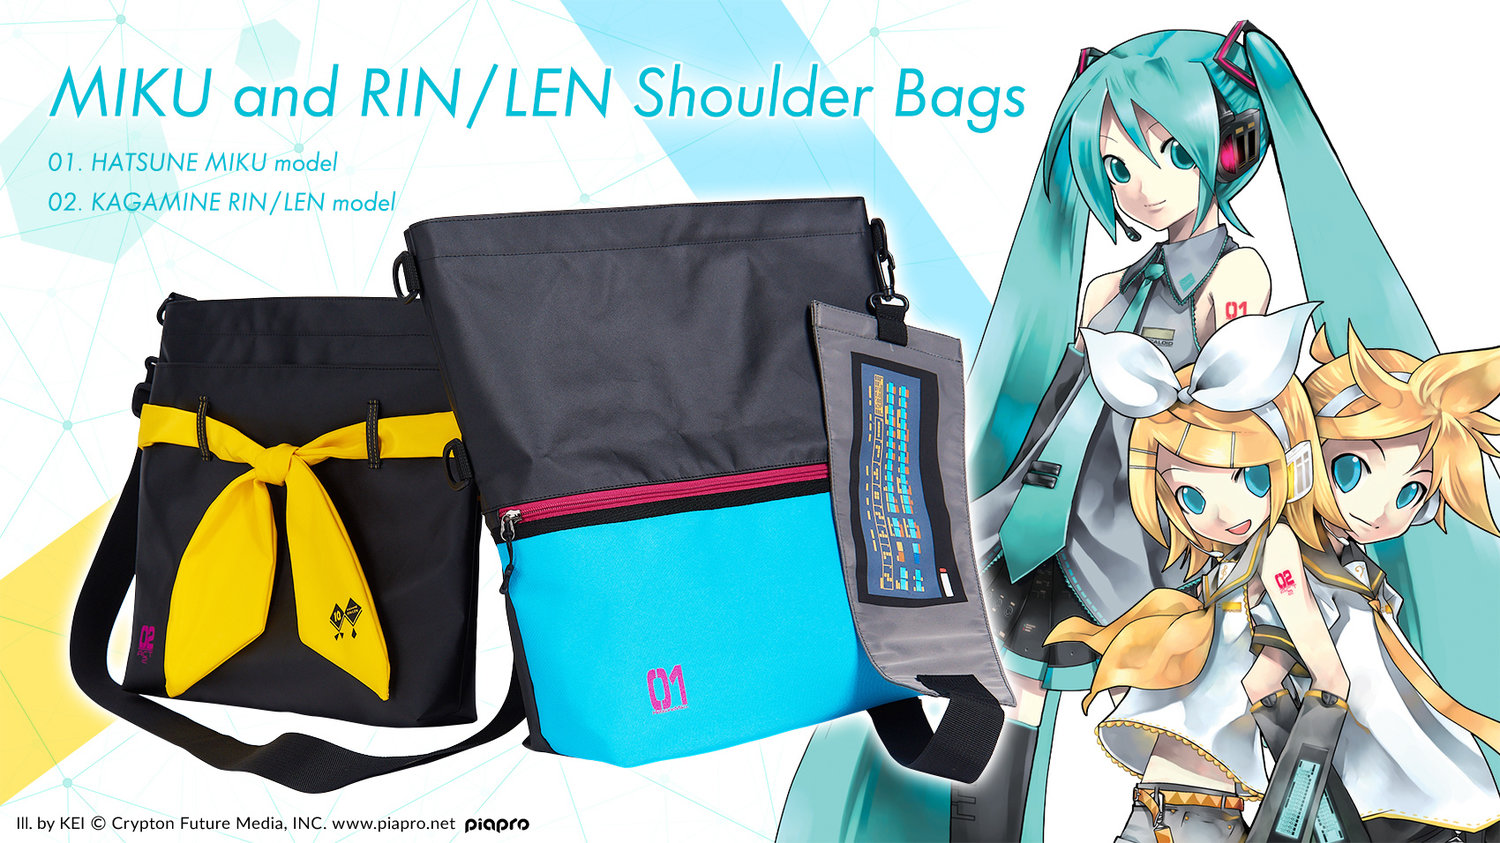 MIKU and RIN / LEN Shoulder Bag